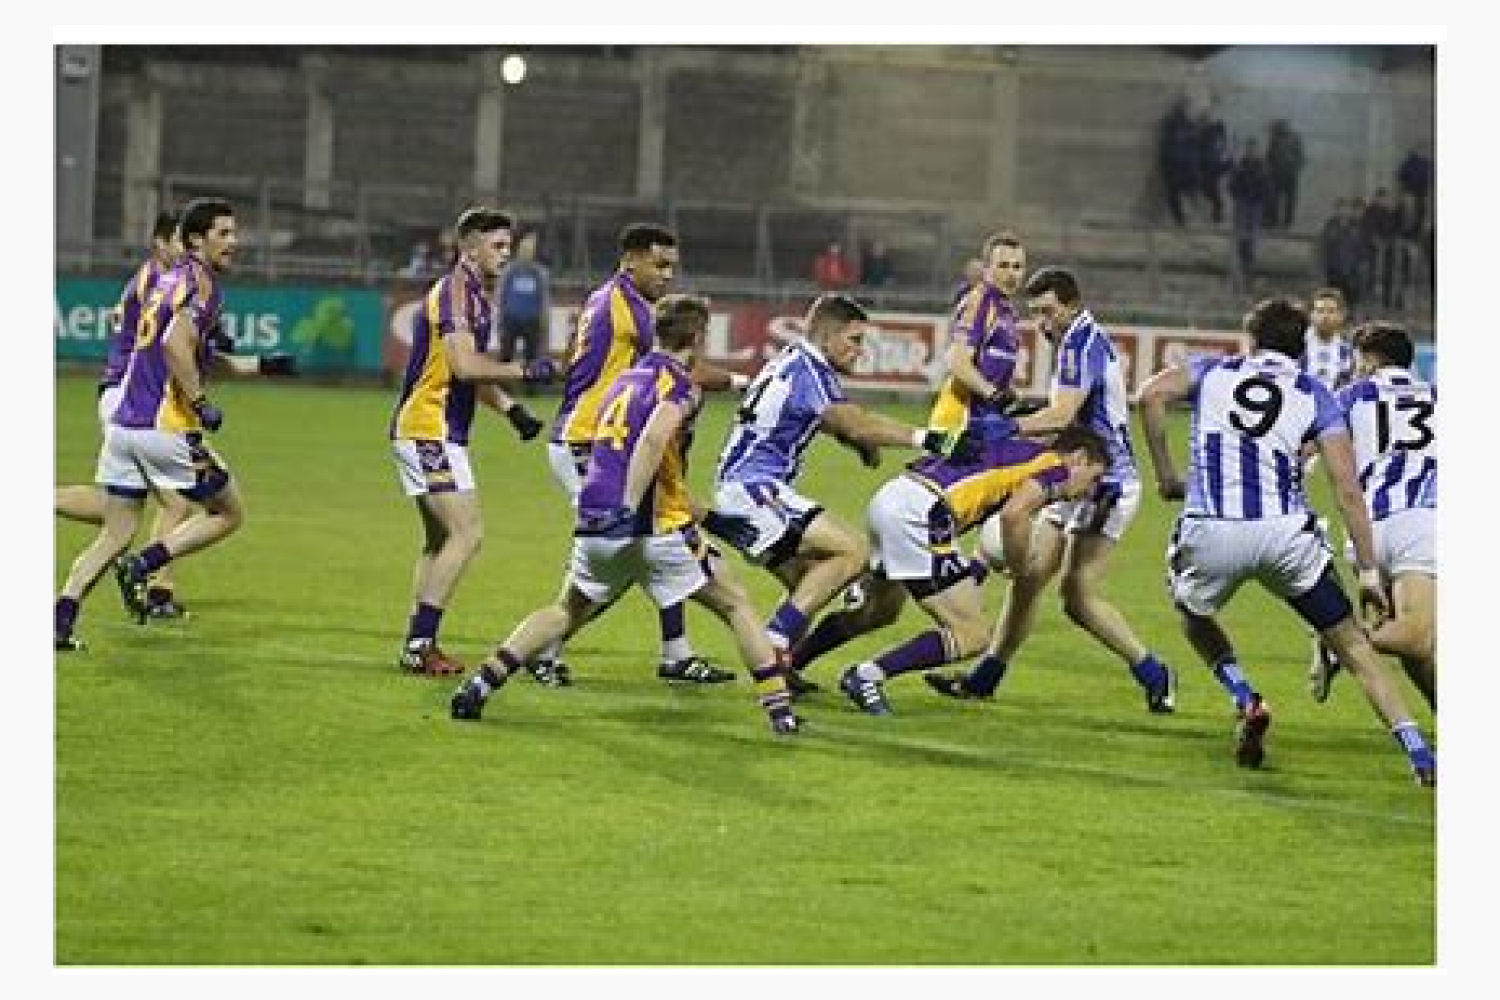 Kilmacud Crokes Announces New AFL1 Senior Football Management Team